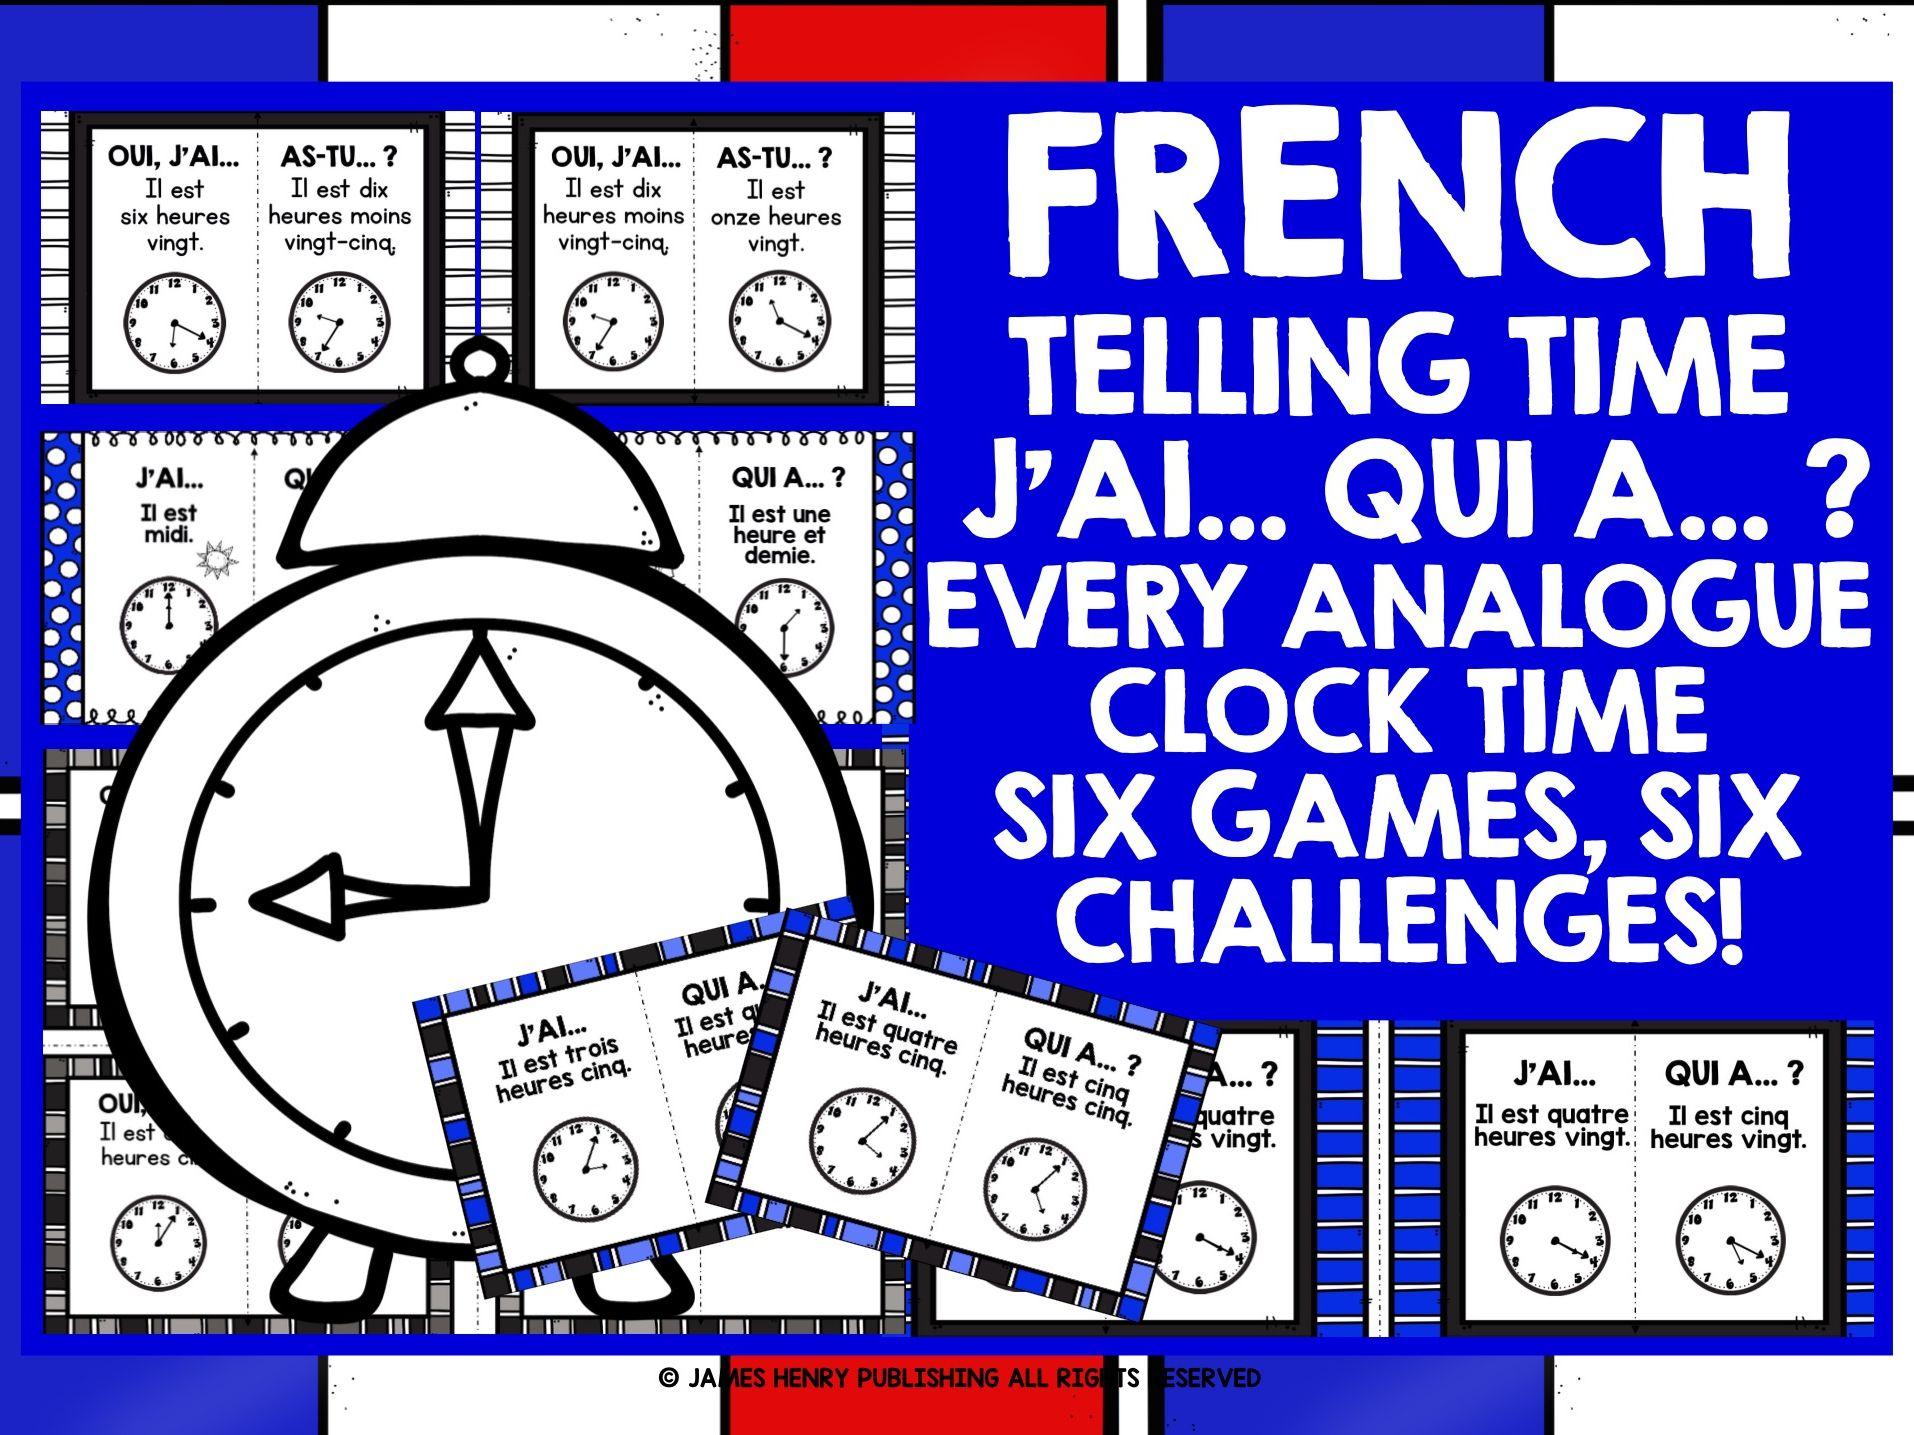 FRENCH TELLING TIME I HAVE WHO HAS